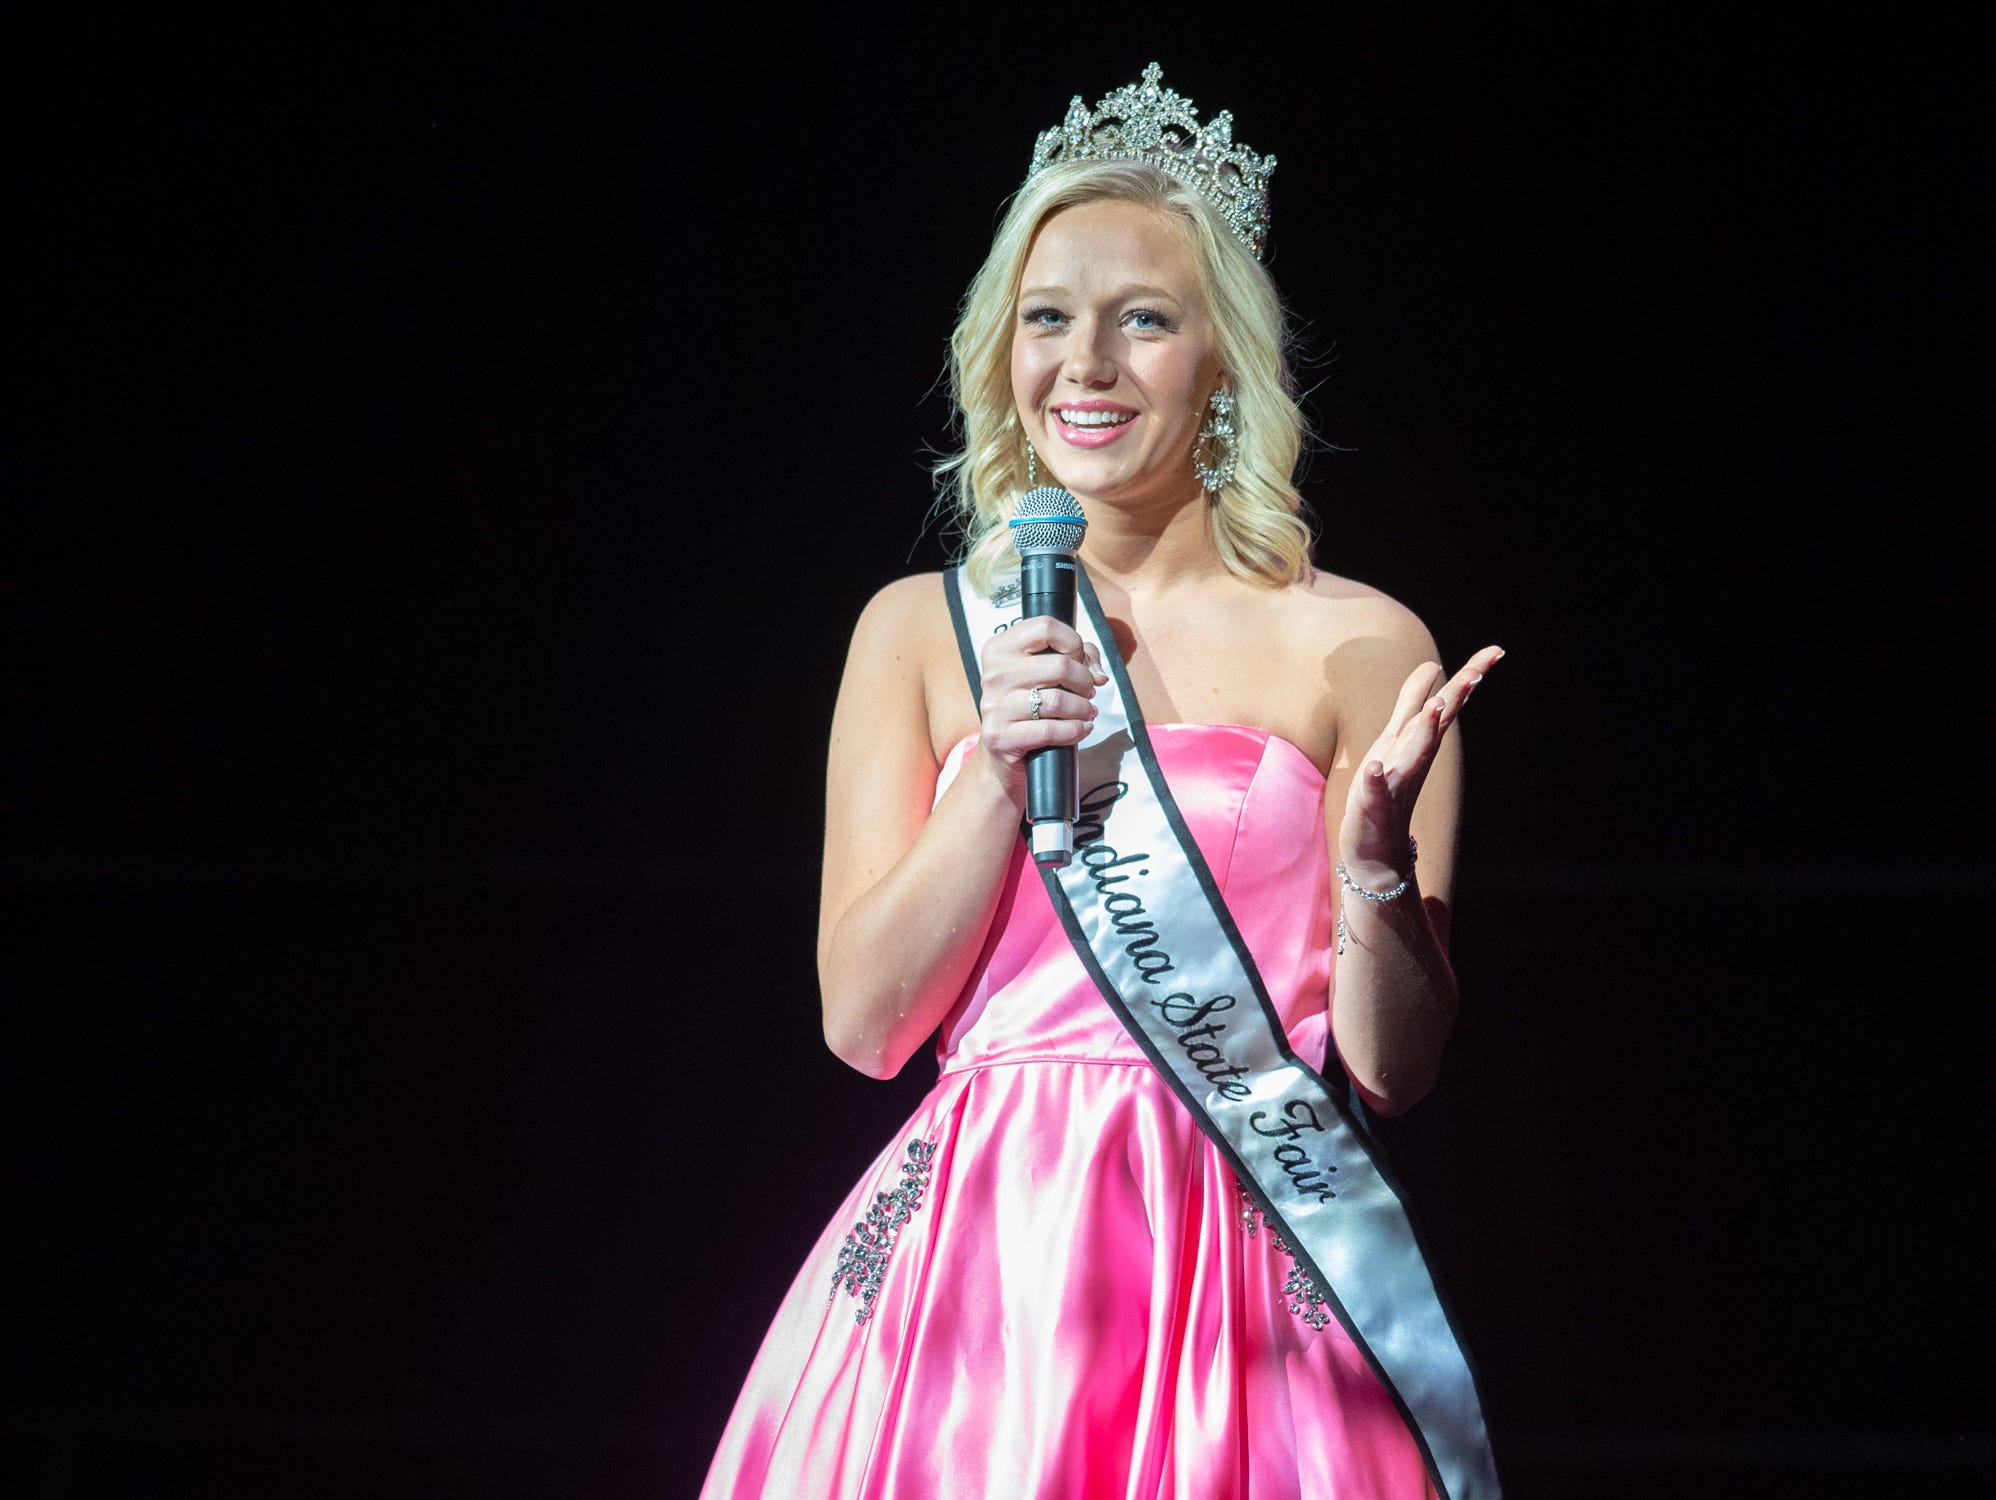 Miss Indiana State Fair 2018, Audrey Campbell, makes an appearance on stage during the 61st Indiana State Fair Queen Pageant at the Indiana State Fairgrounds in Indianapolis on Sunday, Jan. 6, 2019.